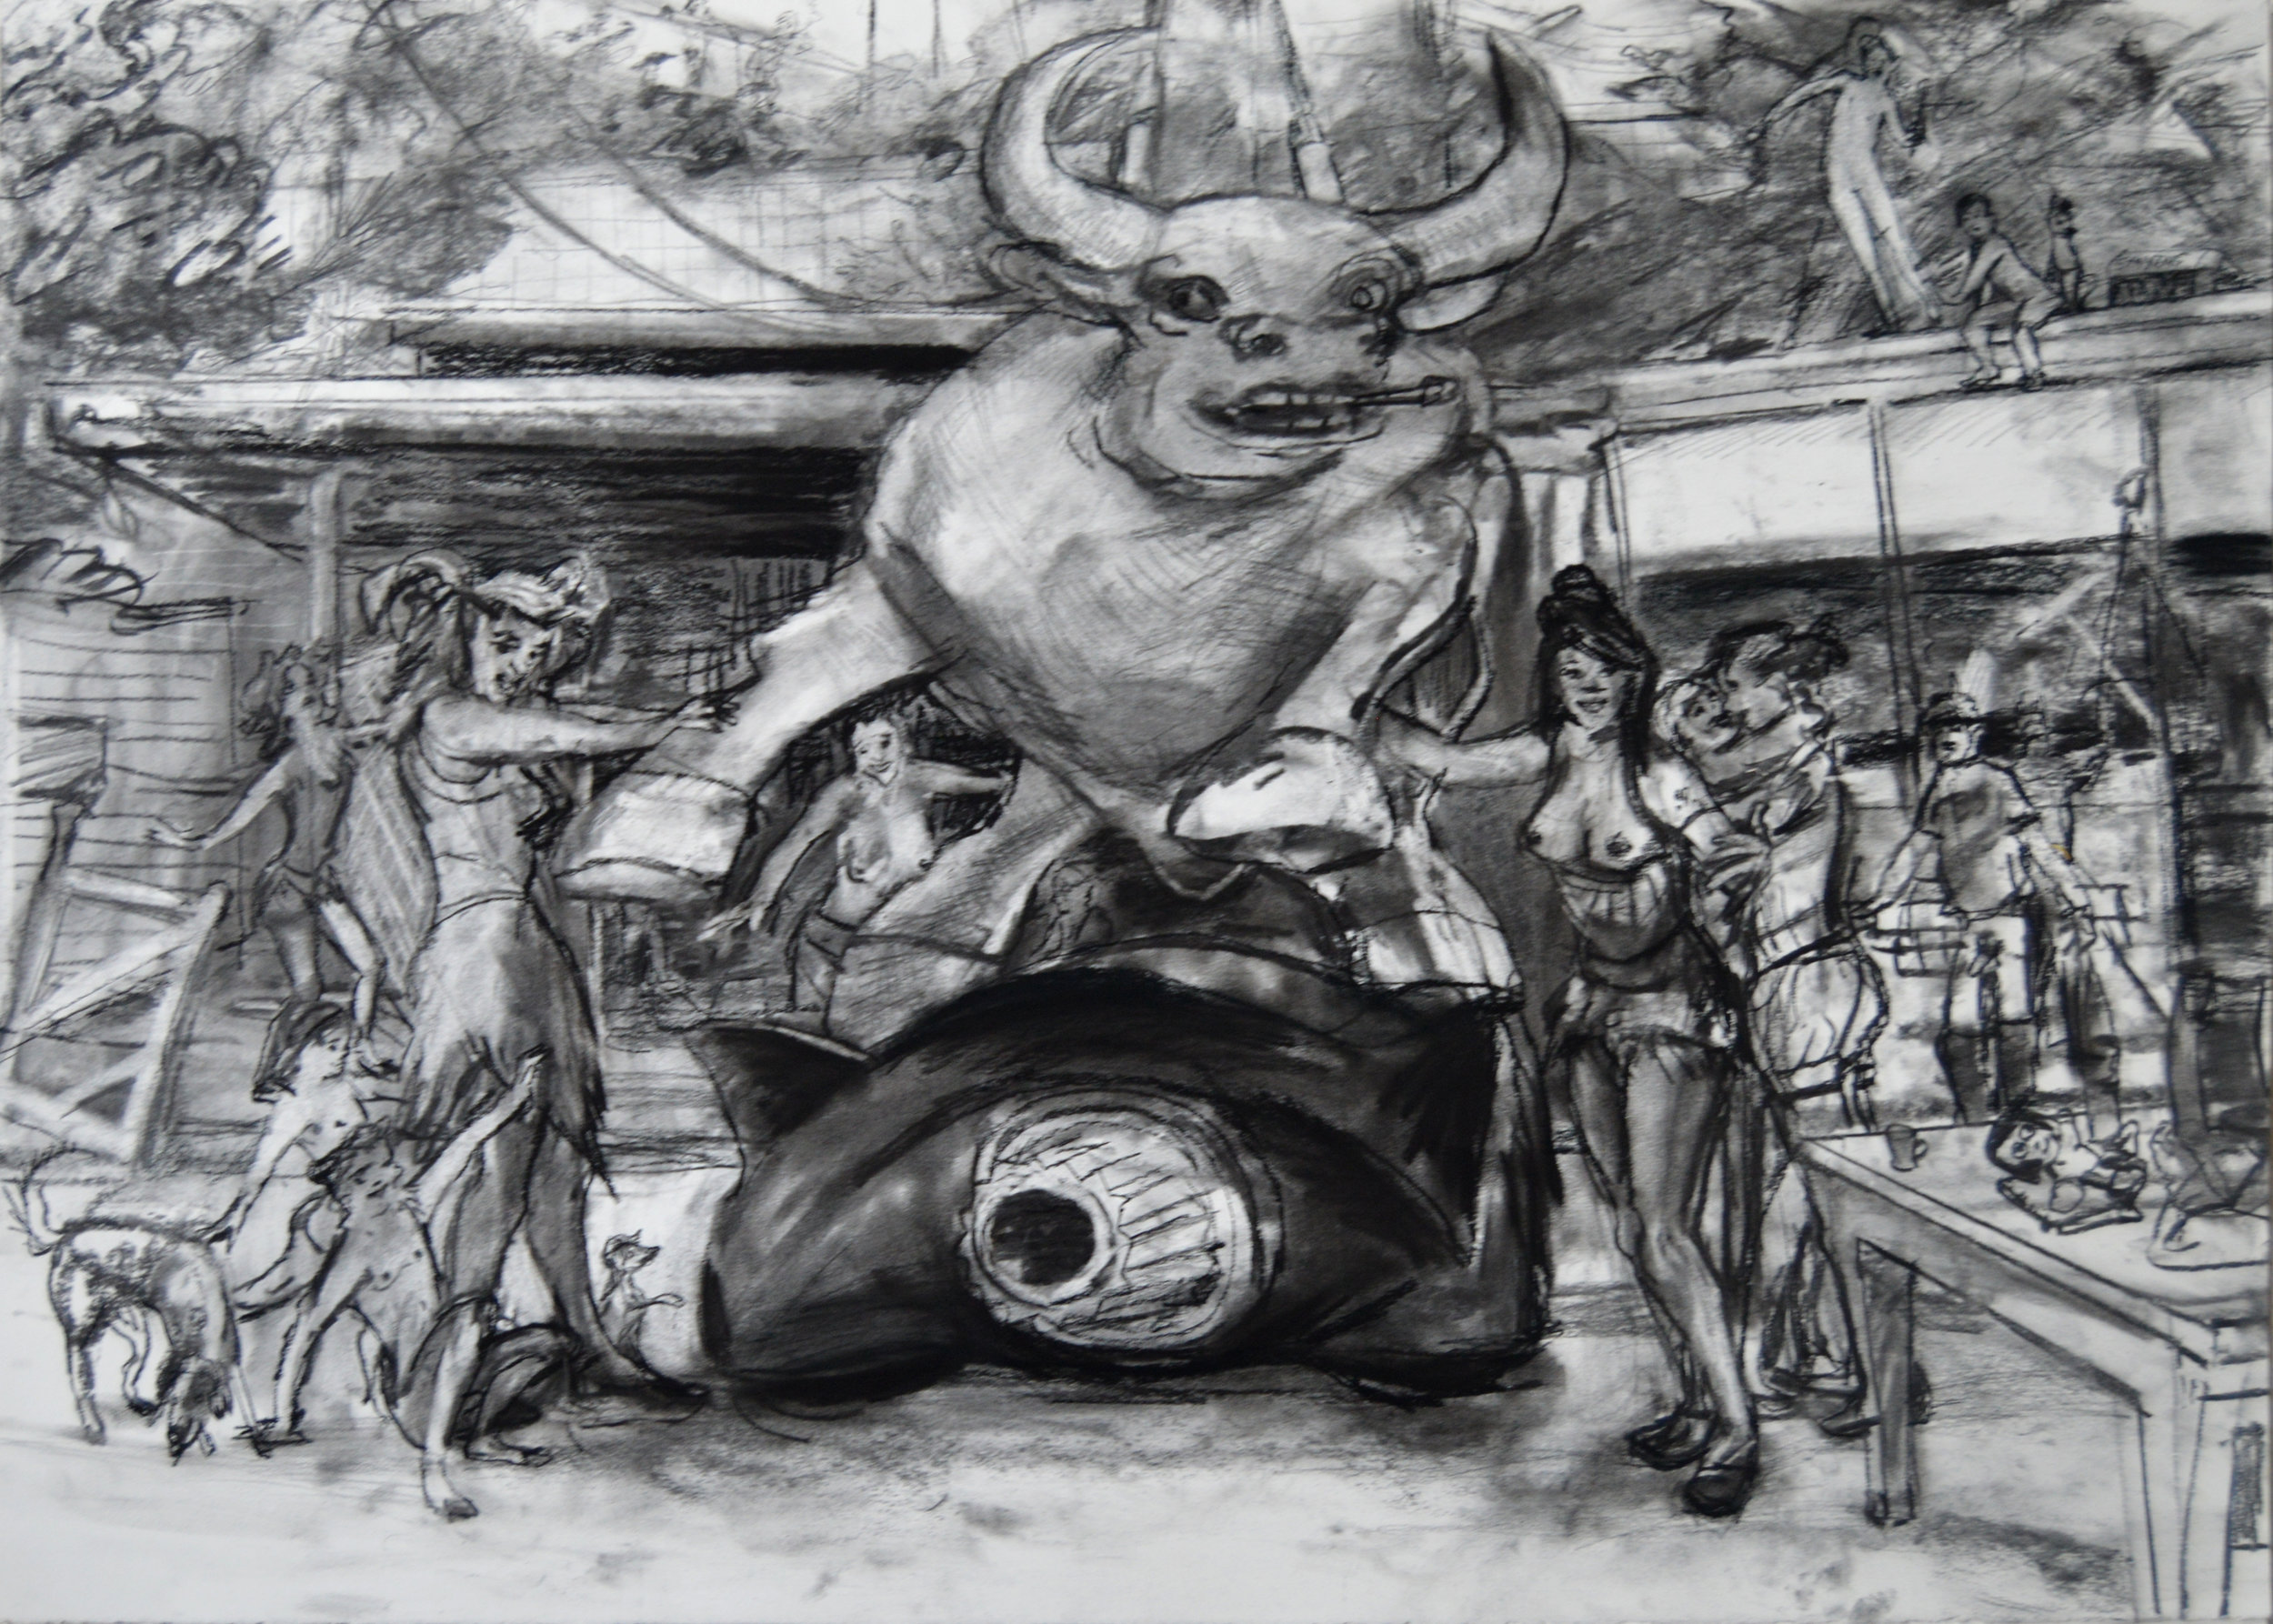 Yonkers charcoal 28 by 40 inches 2016.jpg